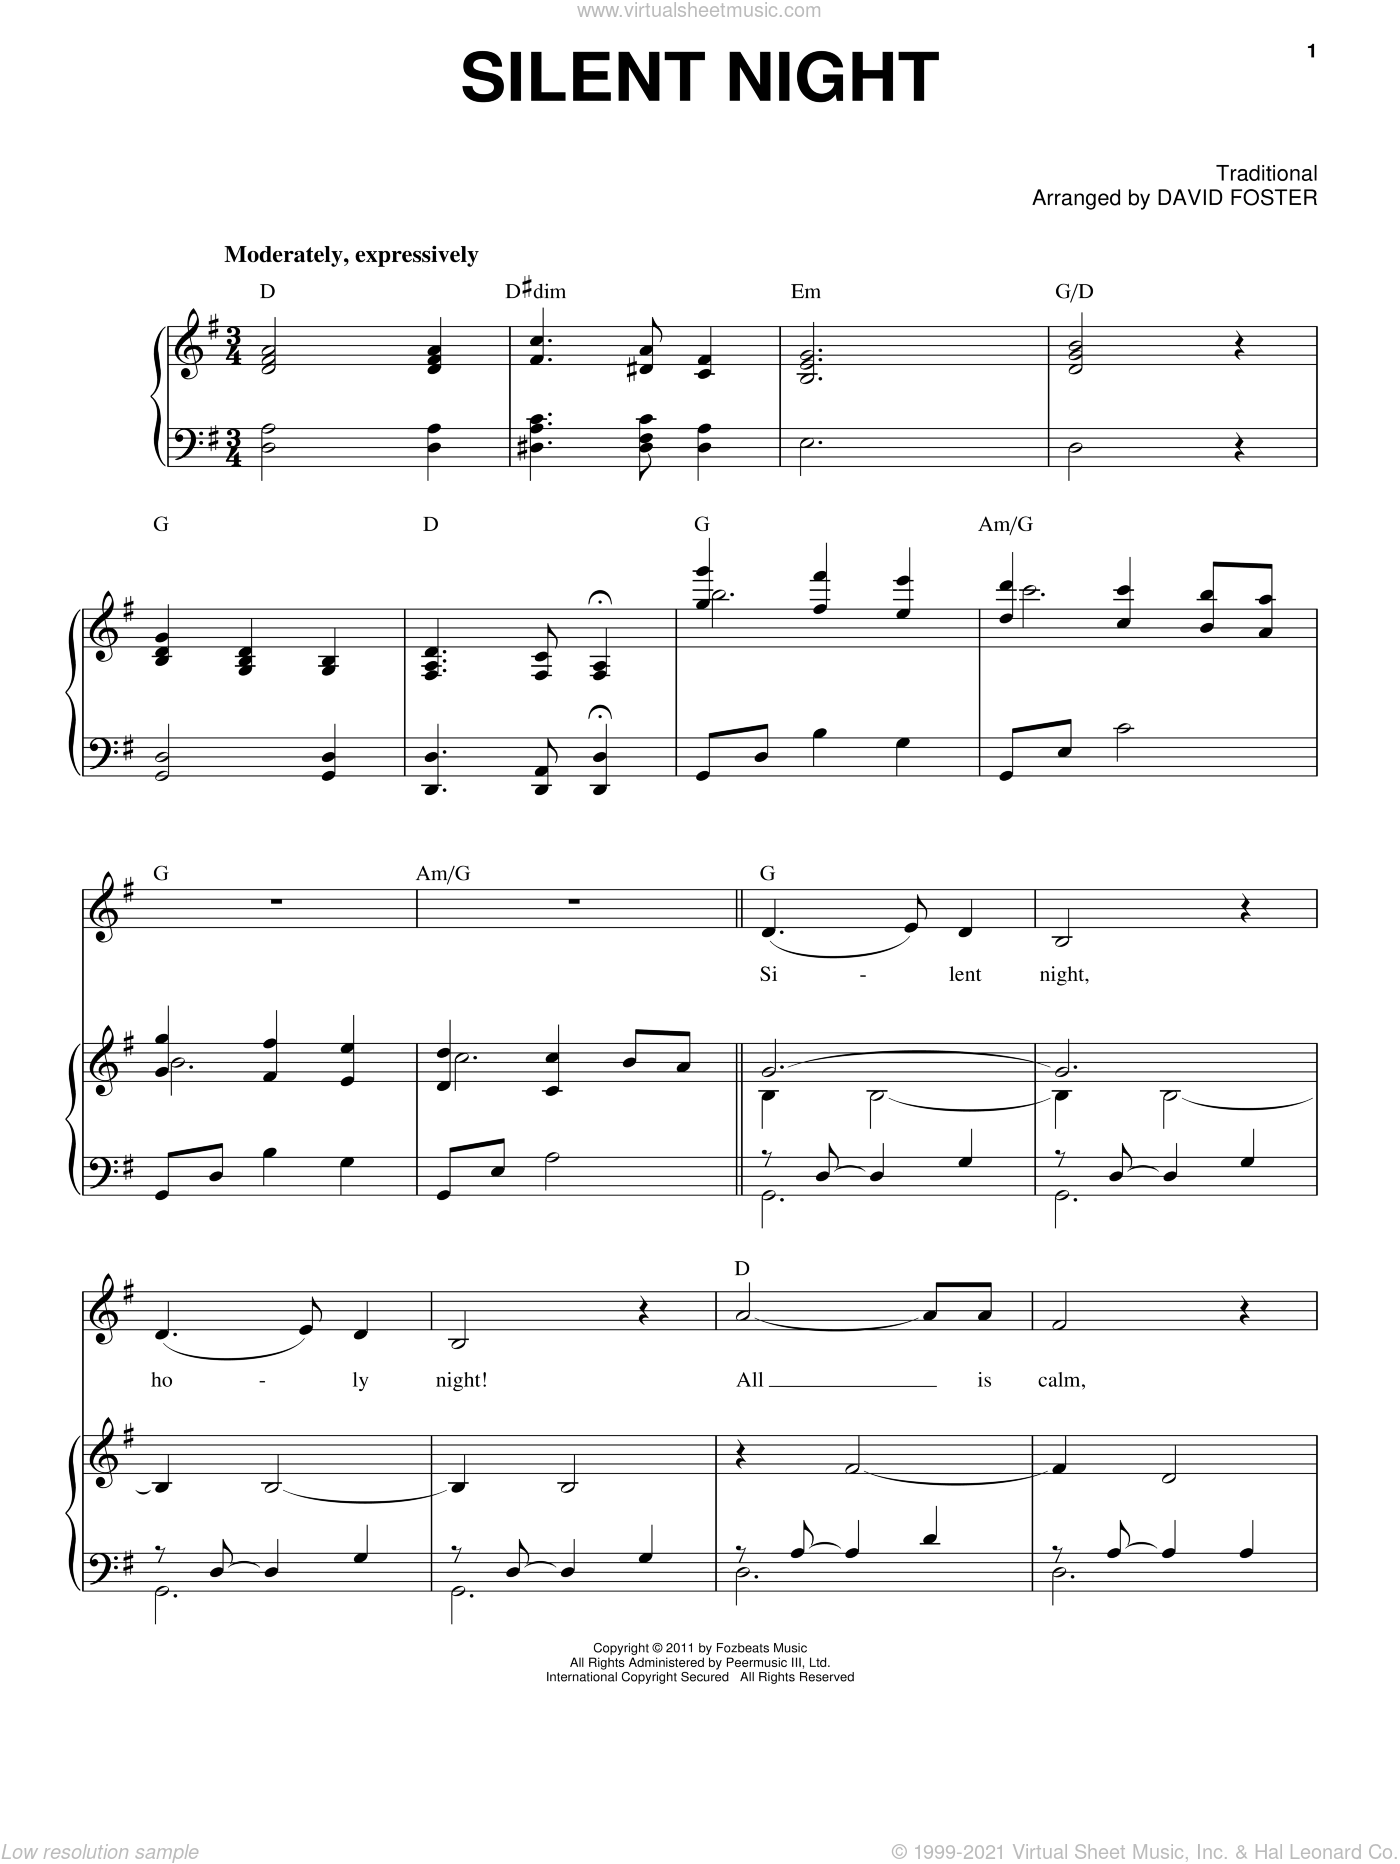 Silent Night sheet music for voice and piano by Michael Buble and David Foster, intermediate skill level